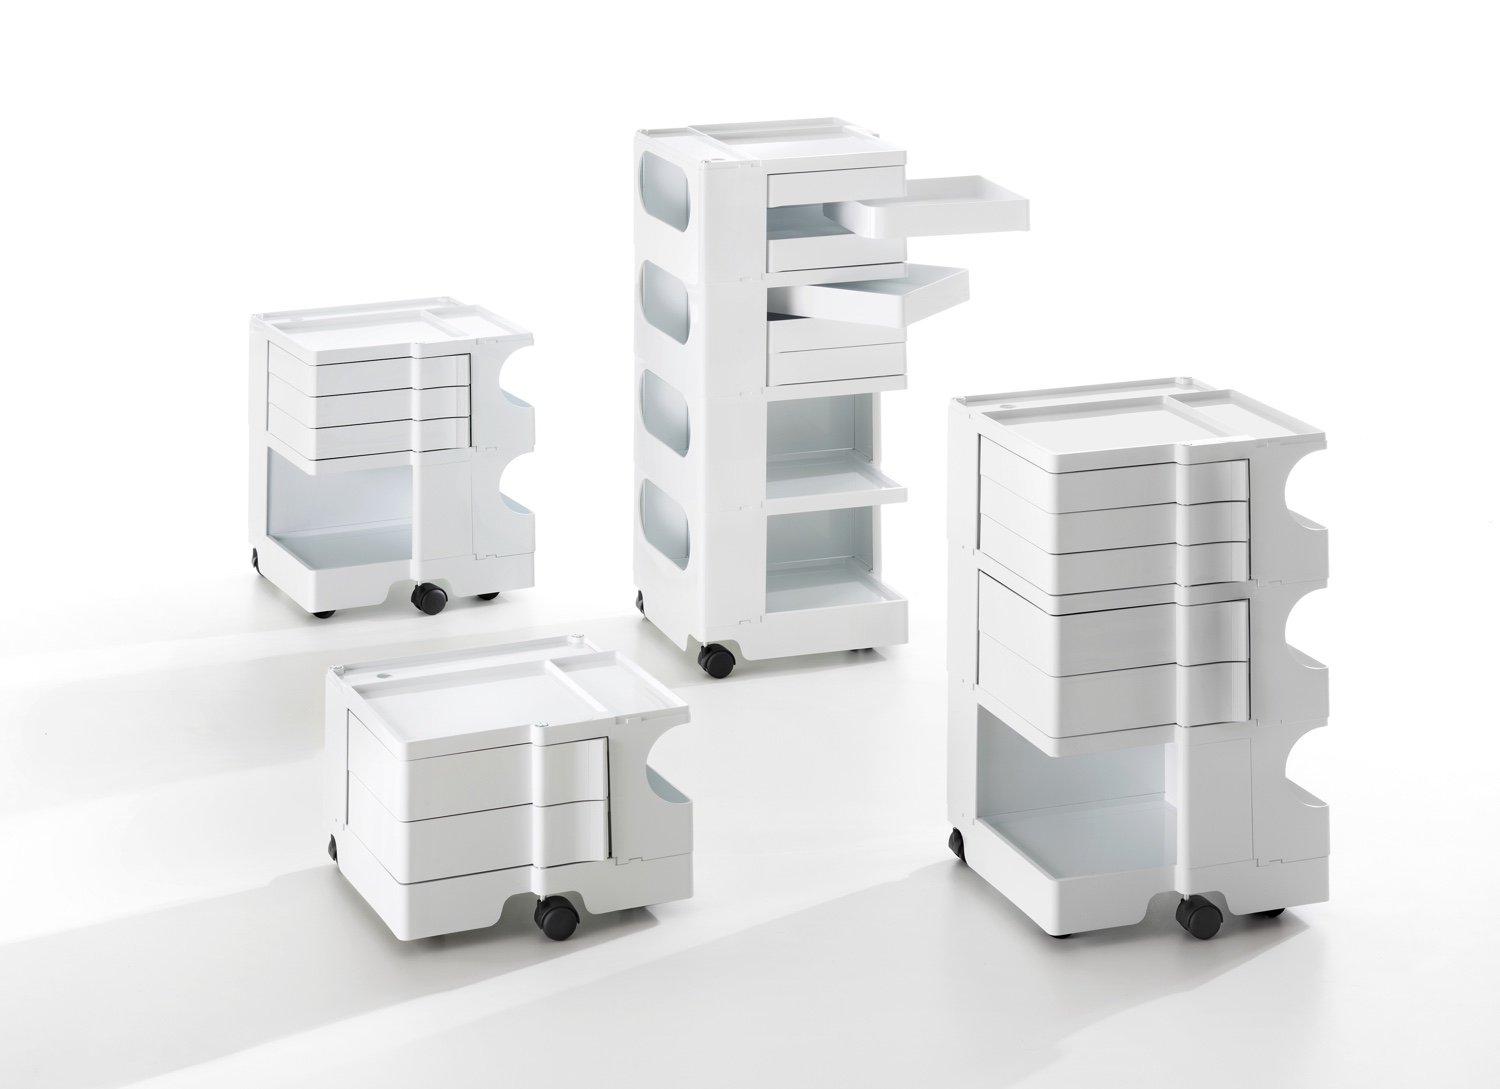 Boby in white Design Icon: Boby the Shelving Tower